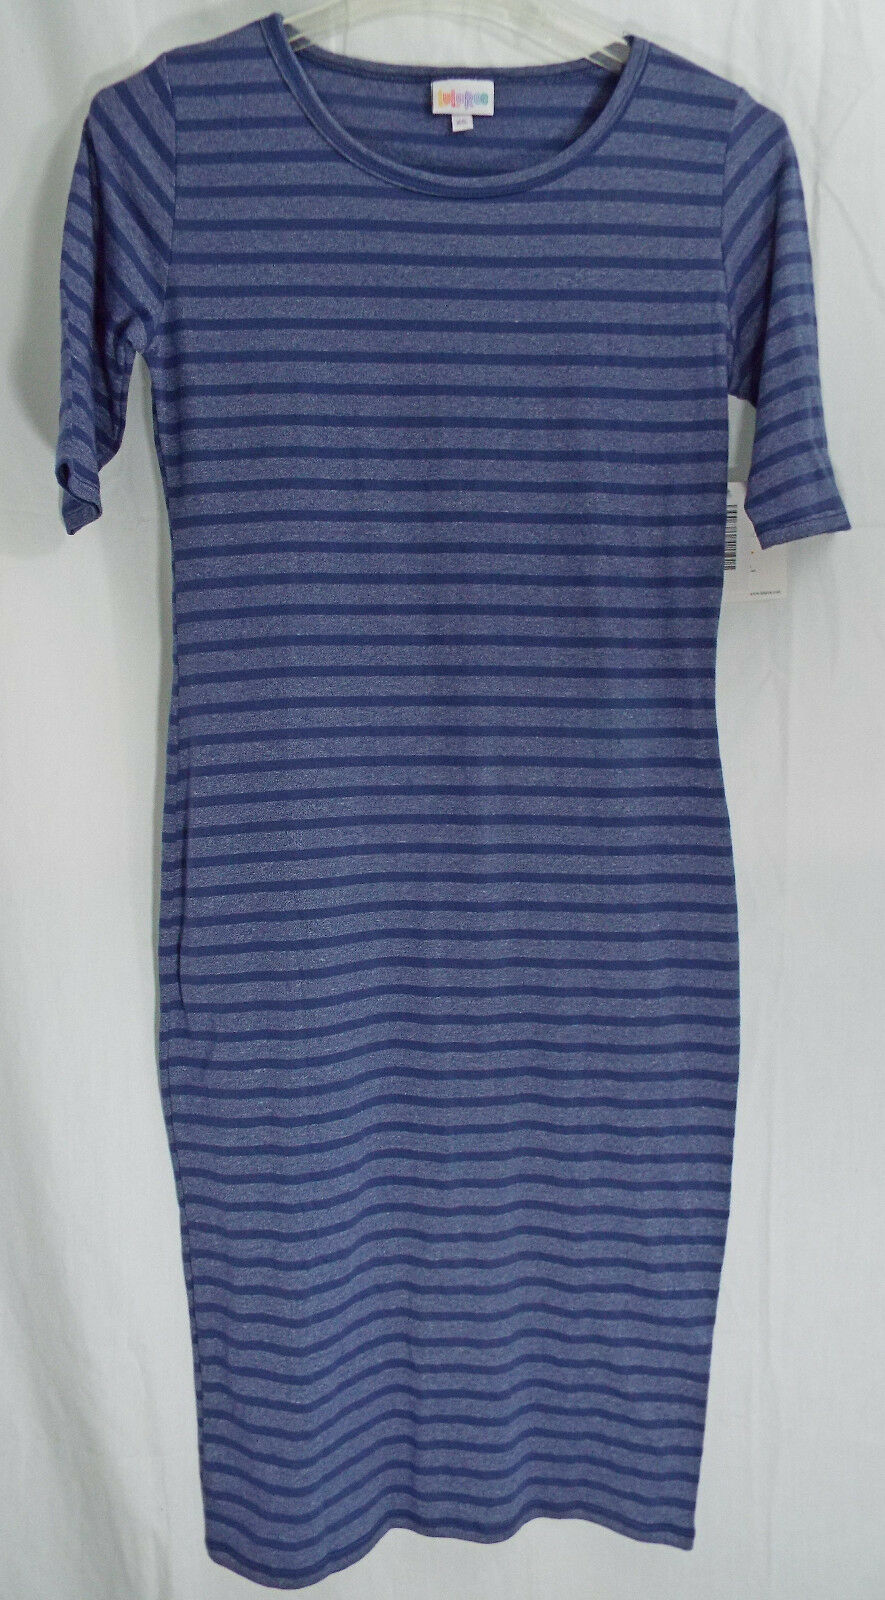 LuLaRoe Julia Dress in L in Heathered bluee with bluee Stripes  NWT